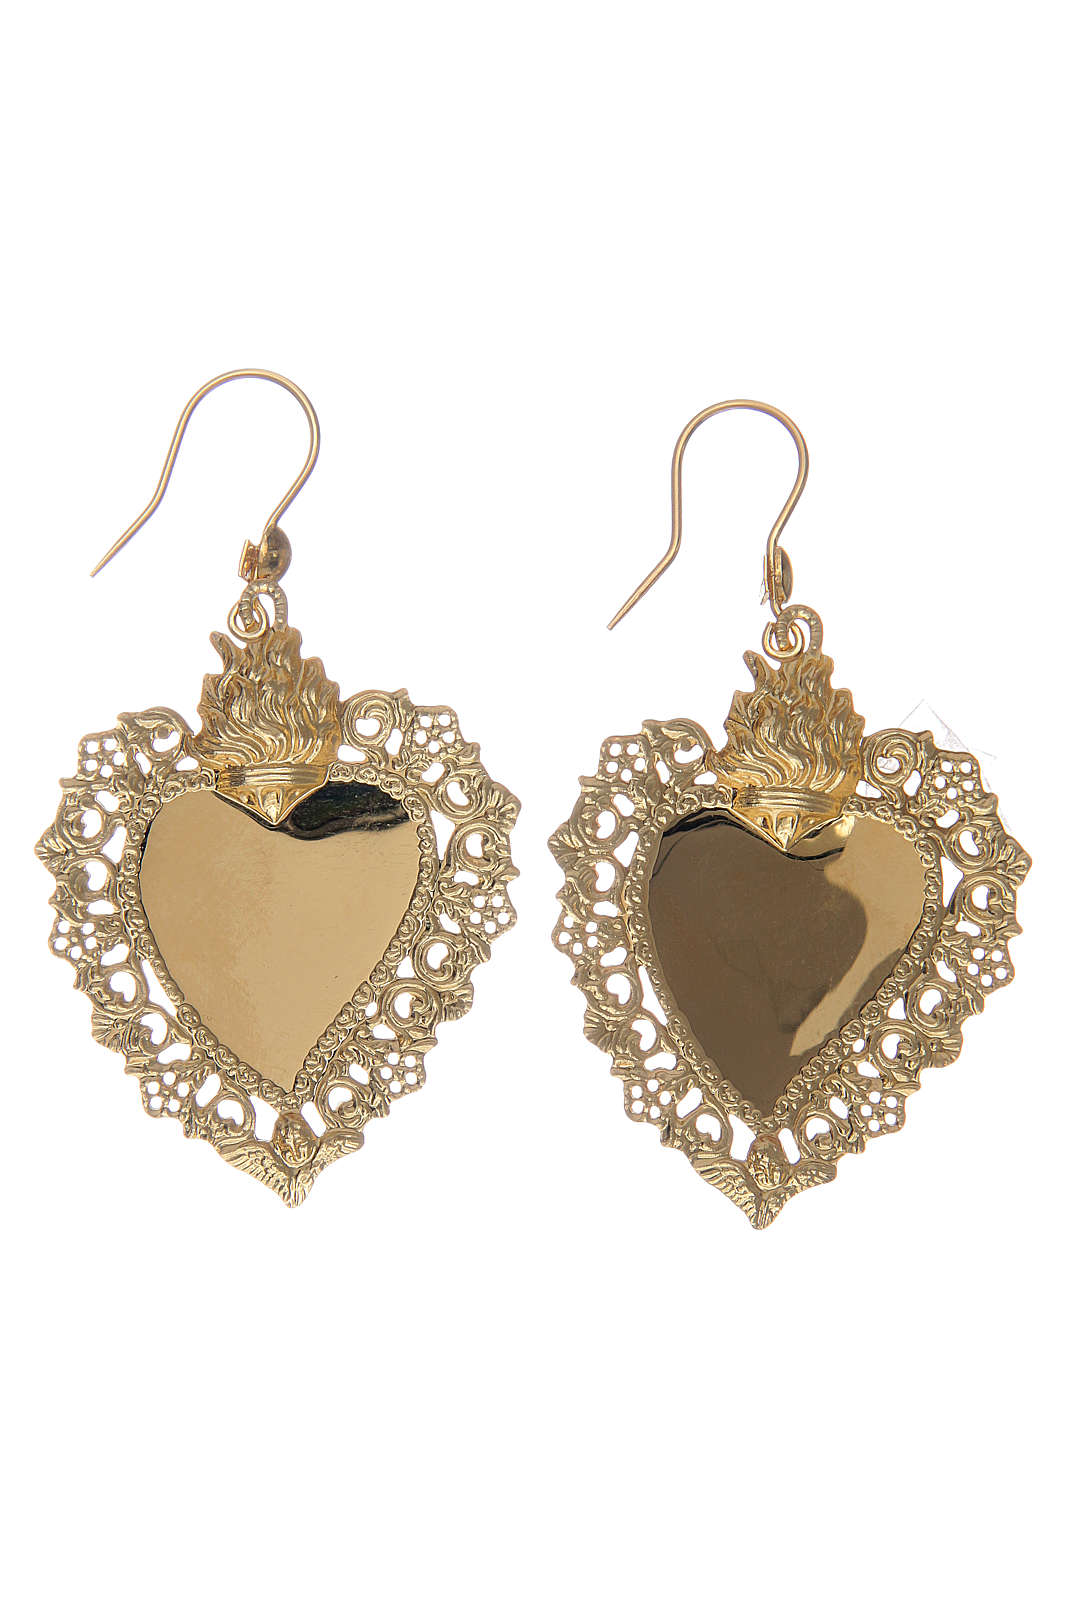 Earrings with votive heart drilled in 925 sterling silver finished in gold 4x3 cm 4